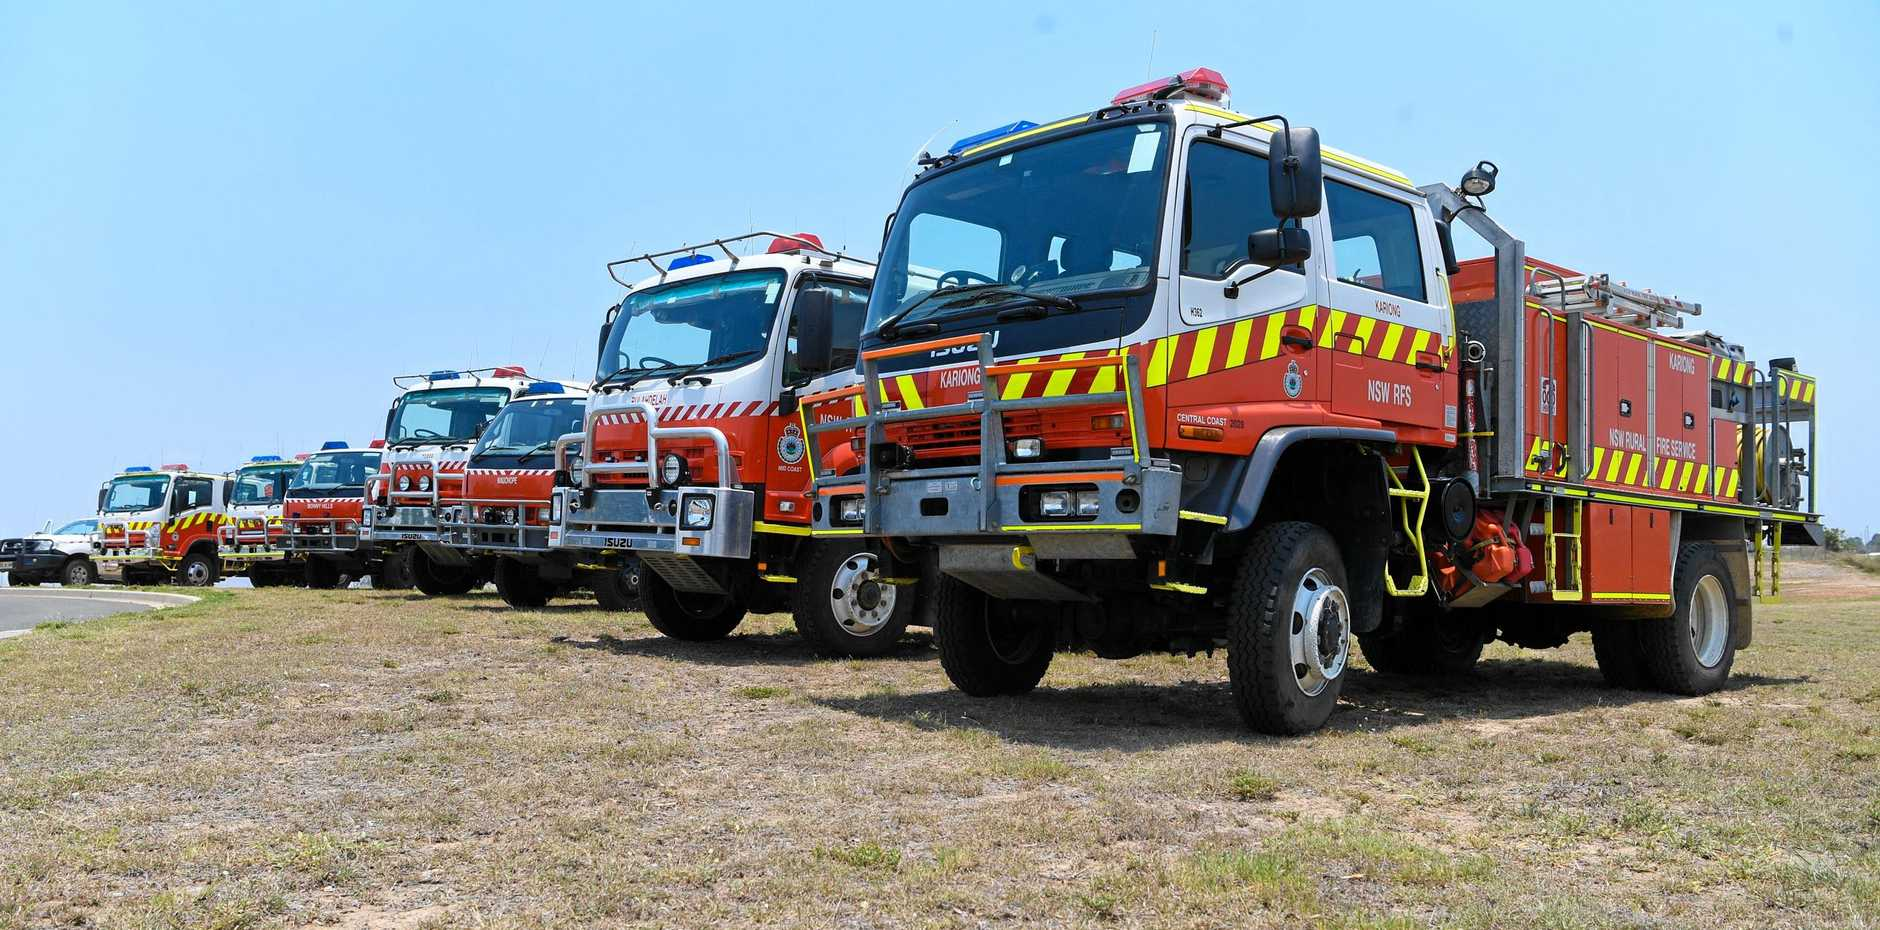 An alleged licence breach by mining companies could result in a new vehicle for the Rural Fire Service.